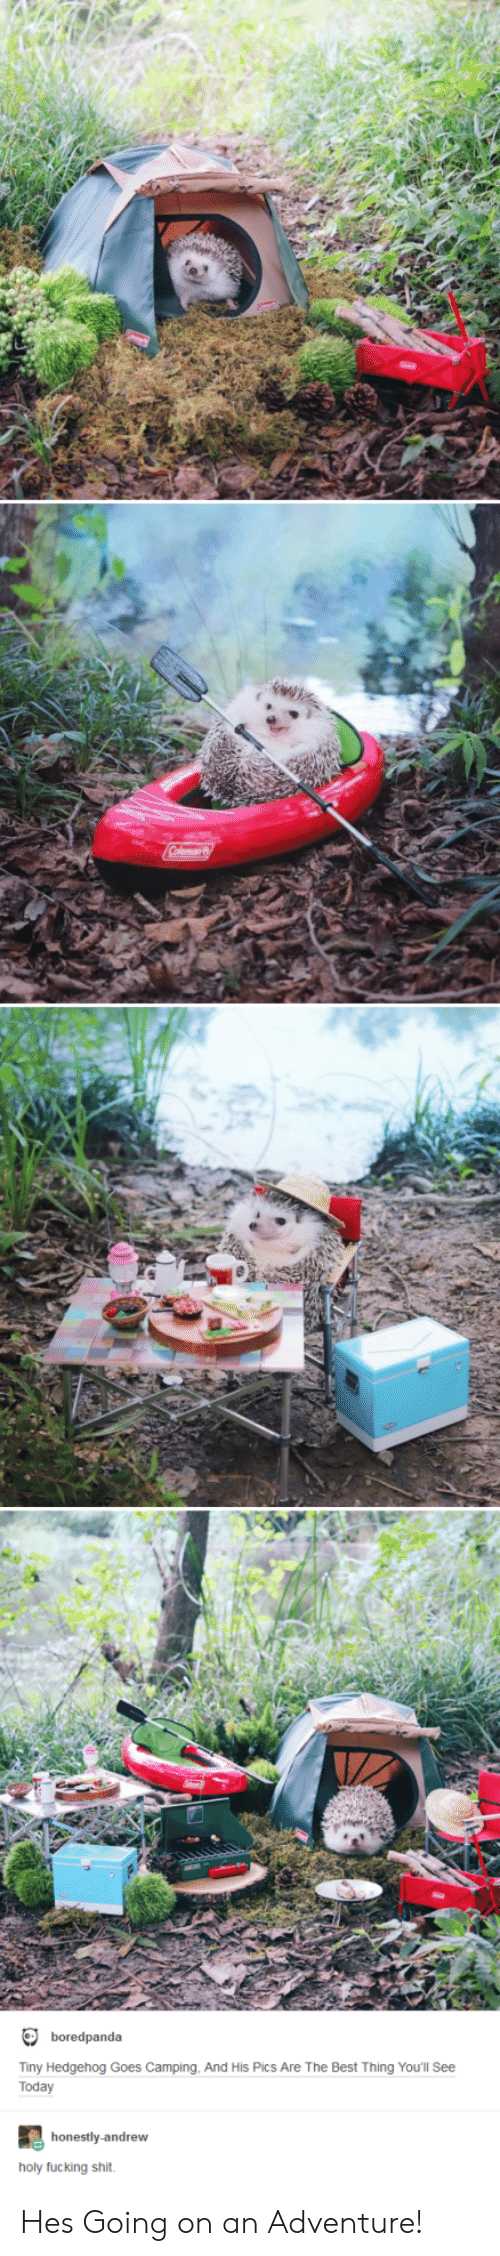 holy fucking shit: boredpanda  Tiny Hedgehog Goes Camping, And His Pics Are The Best Thing You'll See  Today  honestly-andrew  holy fucking shit Hes Going on an Adventure!